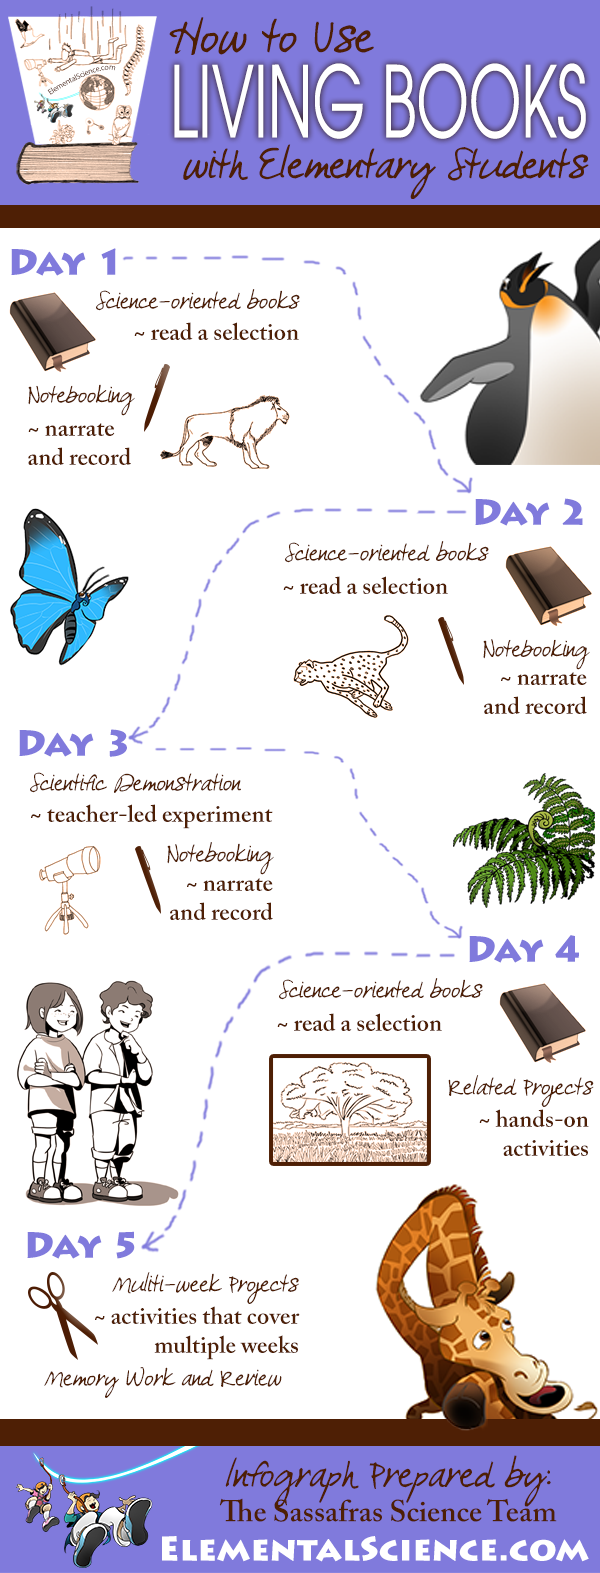 How to use living books to teach science to elementary students {Infograph by Sassafras Science}